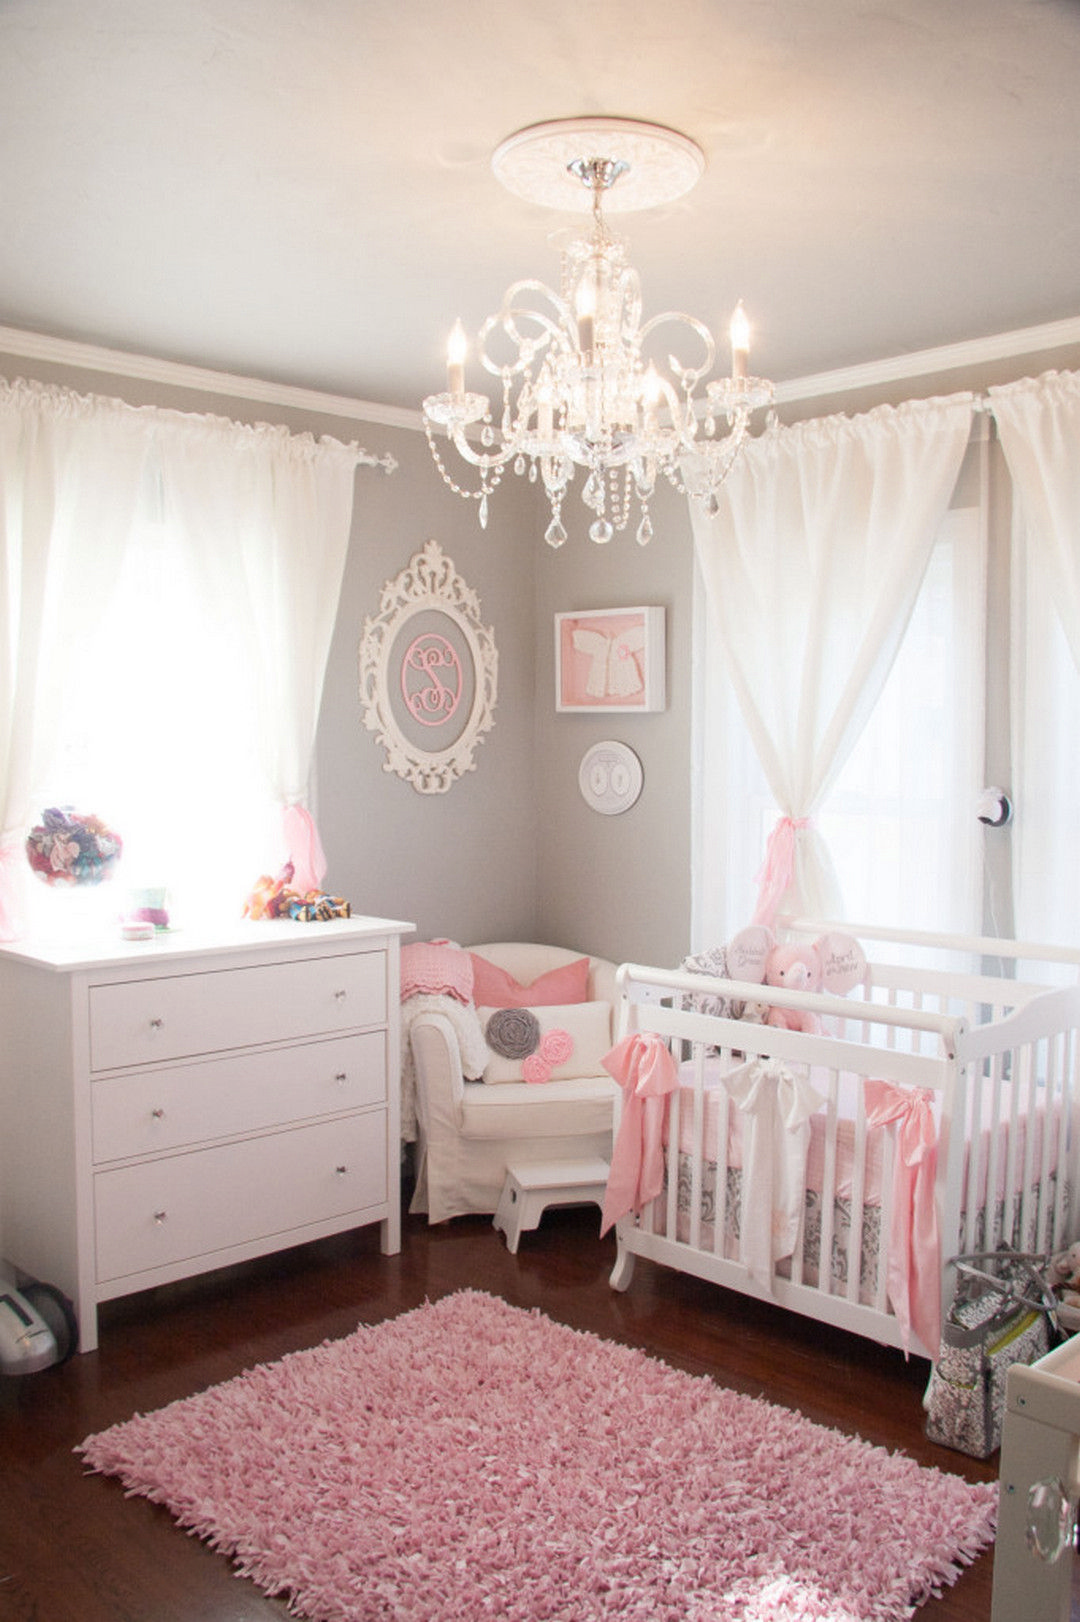 31 Cute Baby Girl Nursery Ideas https://www.futuristarchitecture.com/